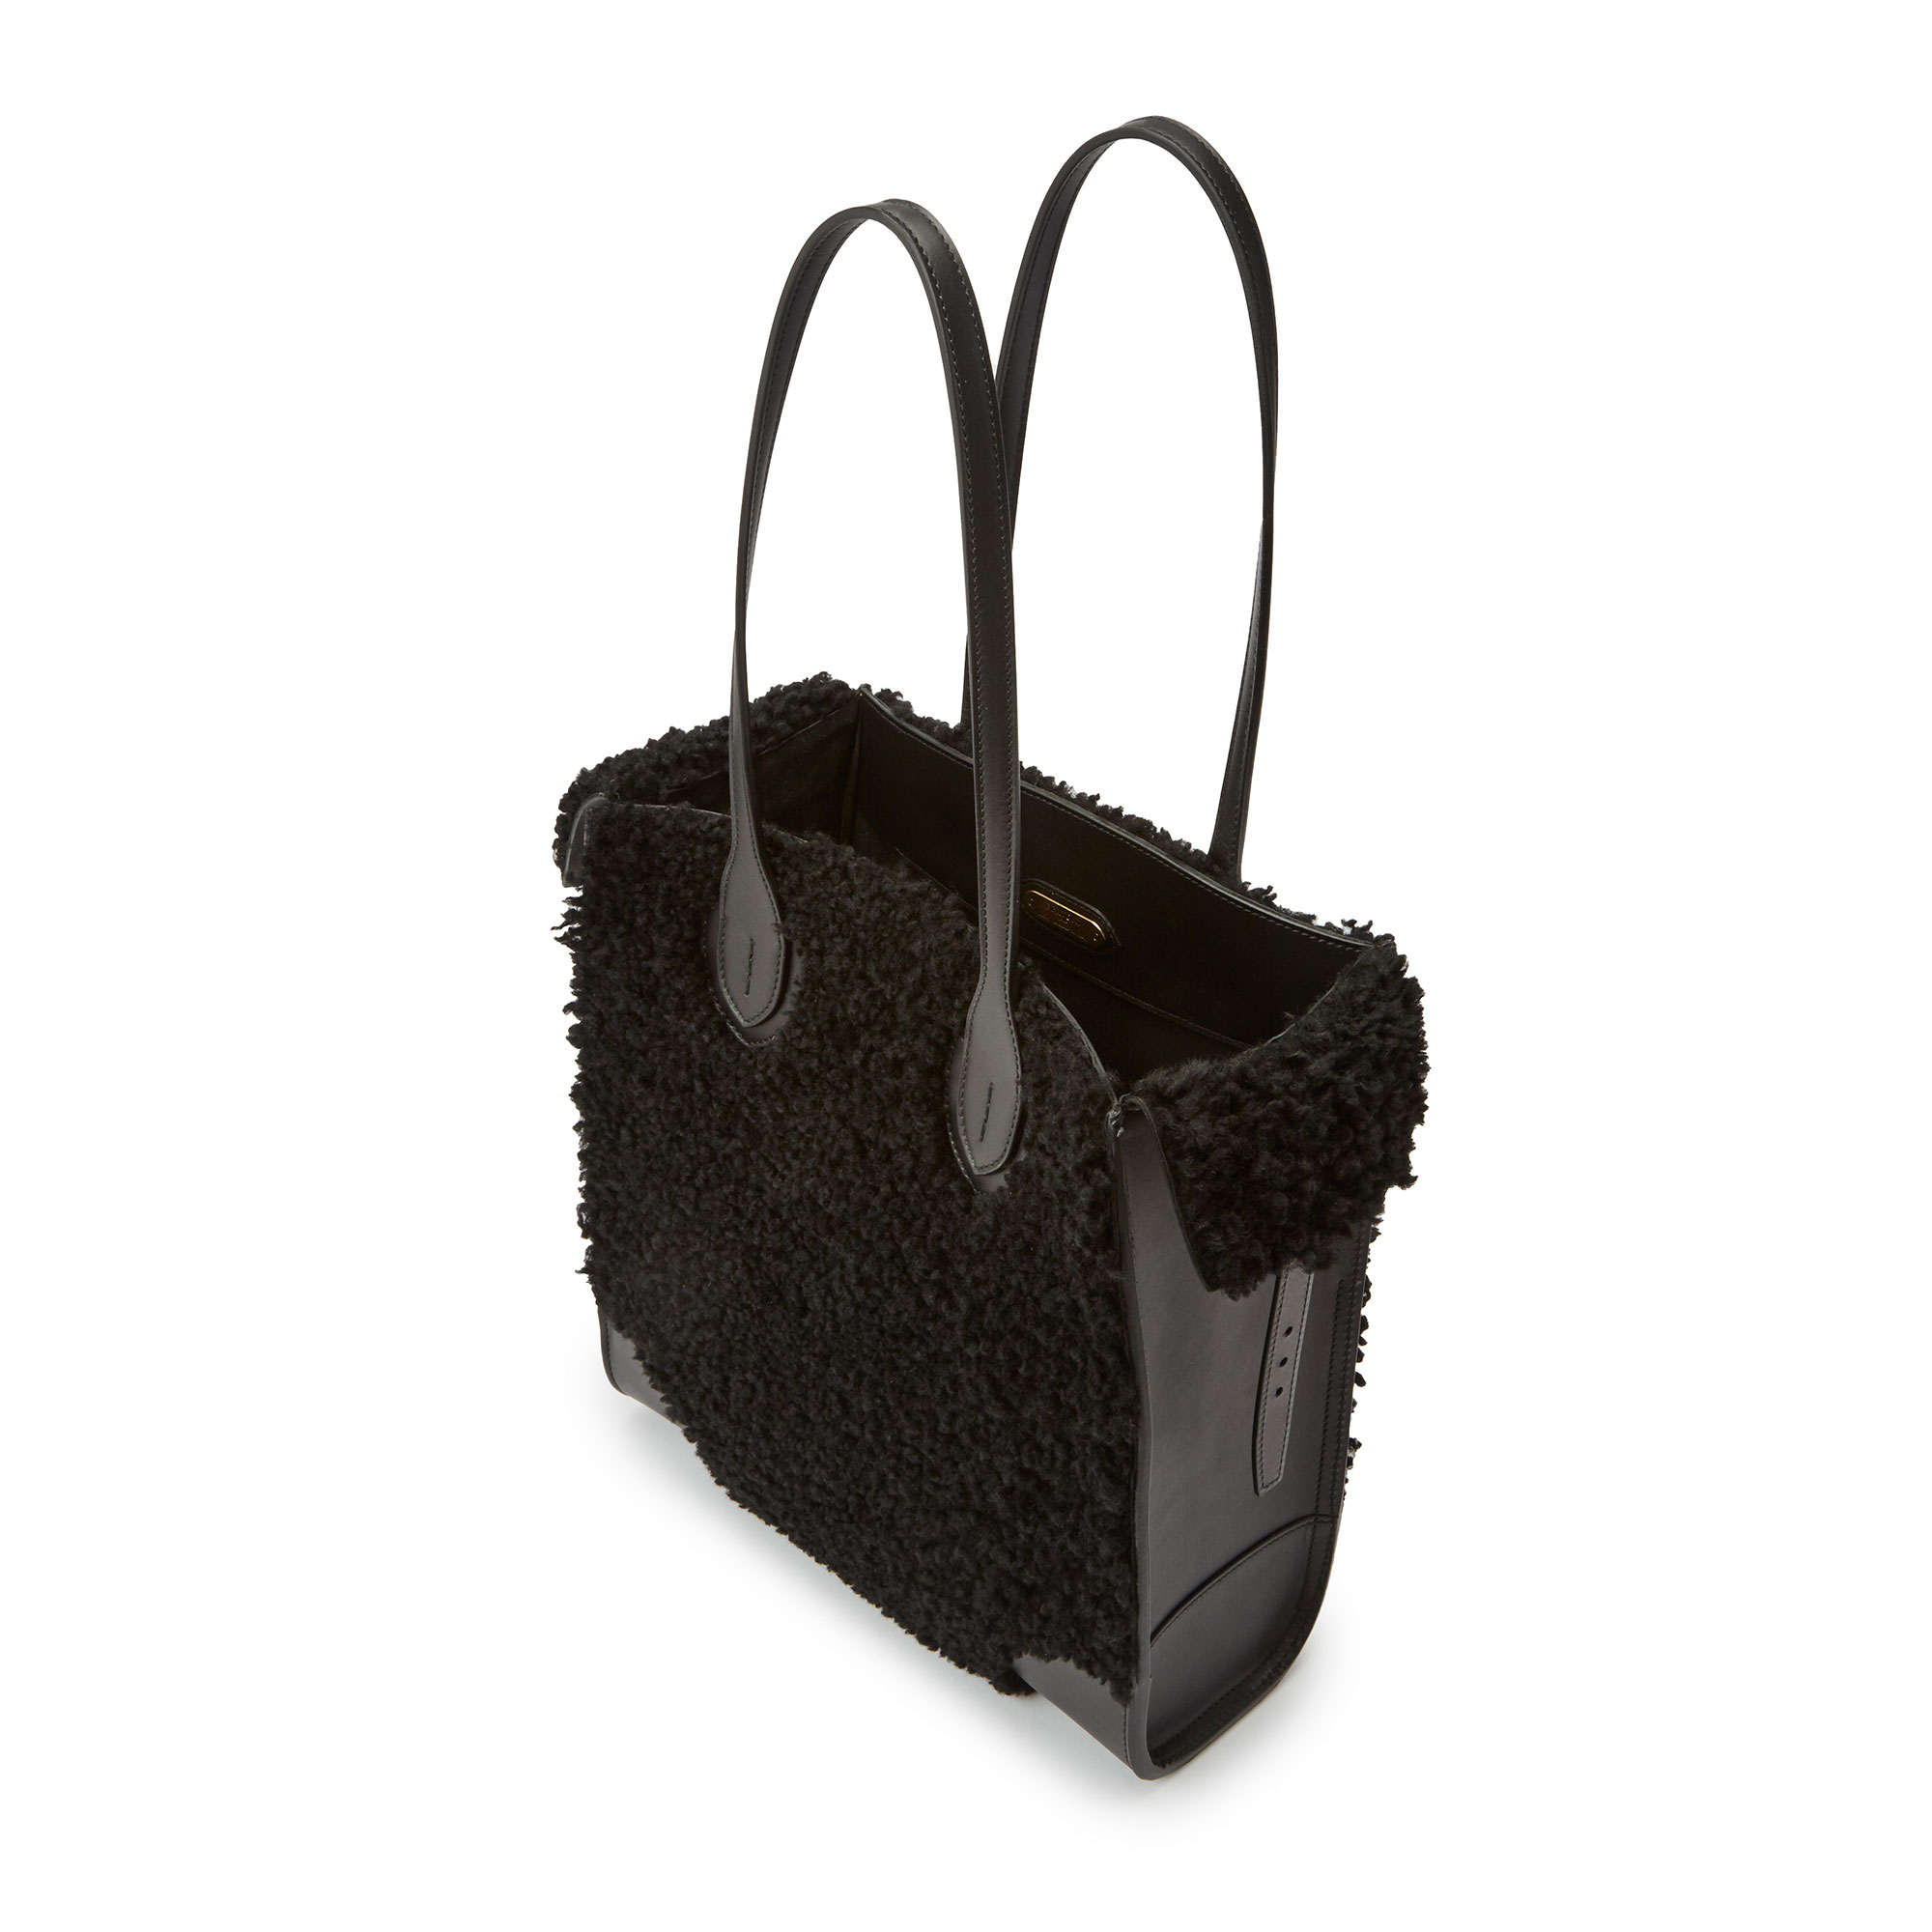 Darcy-Tote-black-shearling-bag-Bertoni-1949_03